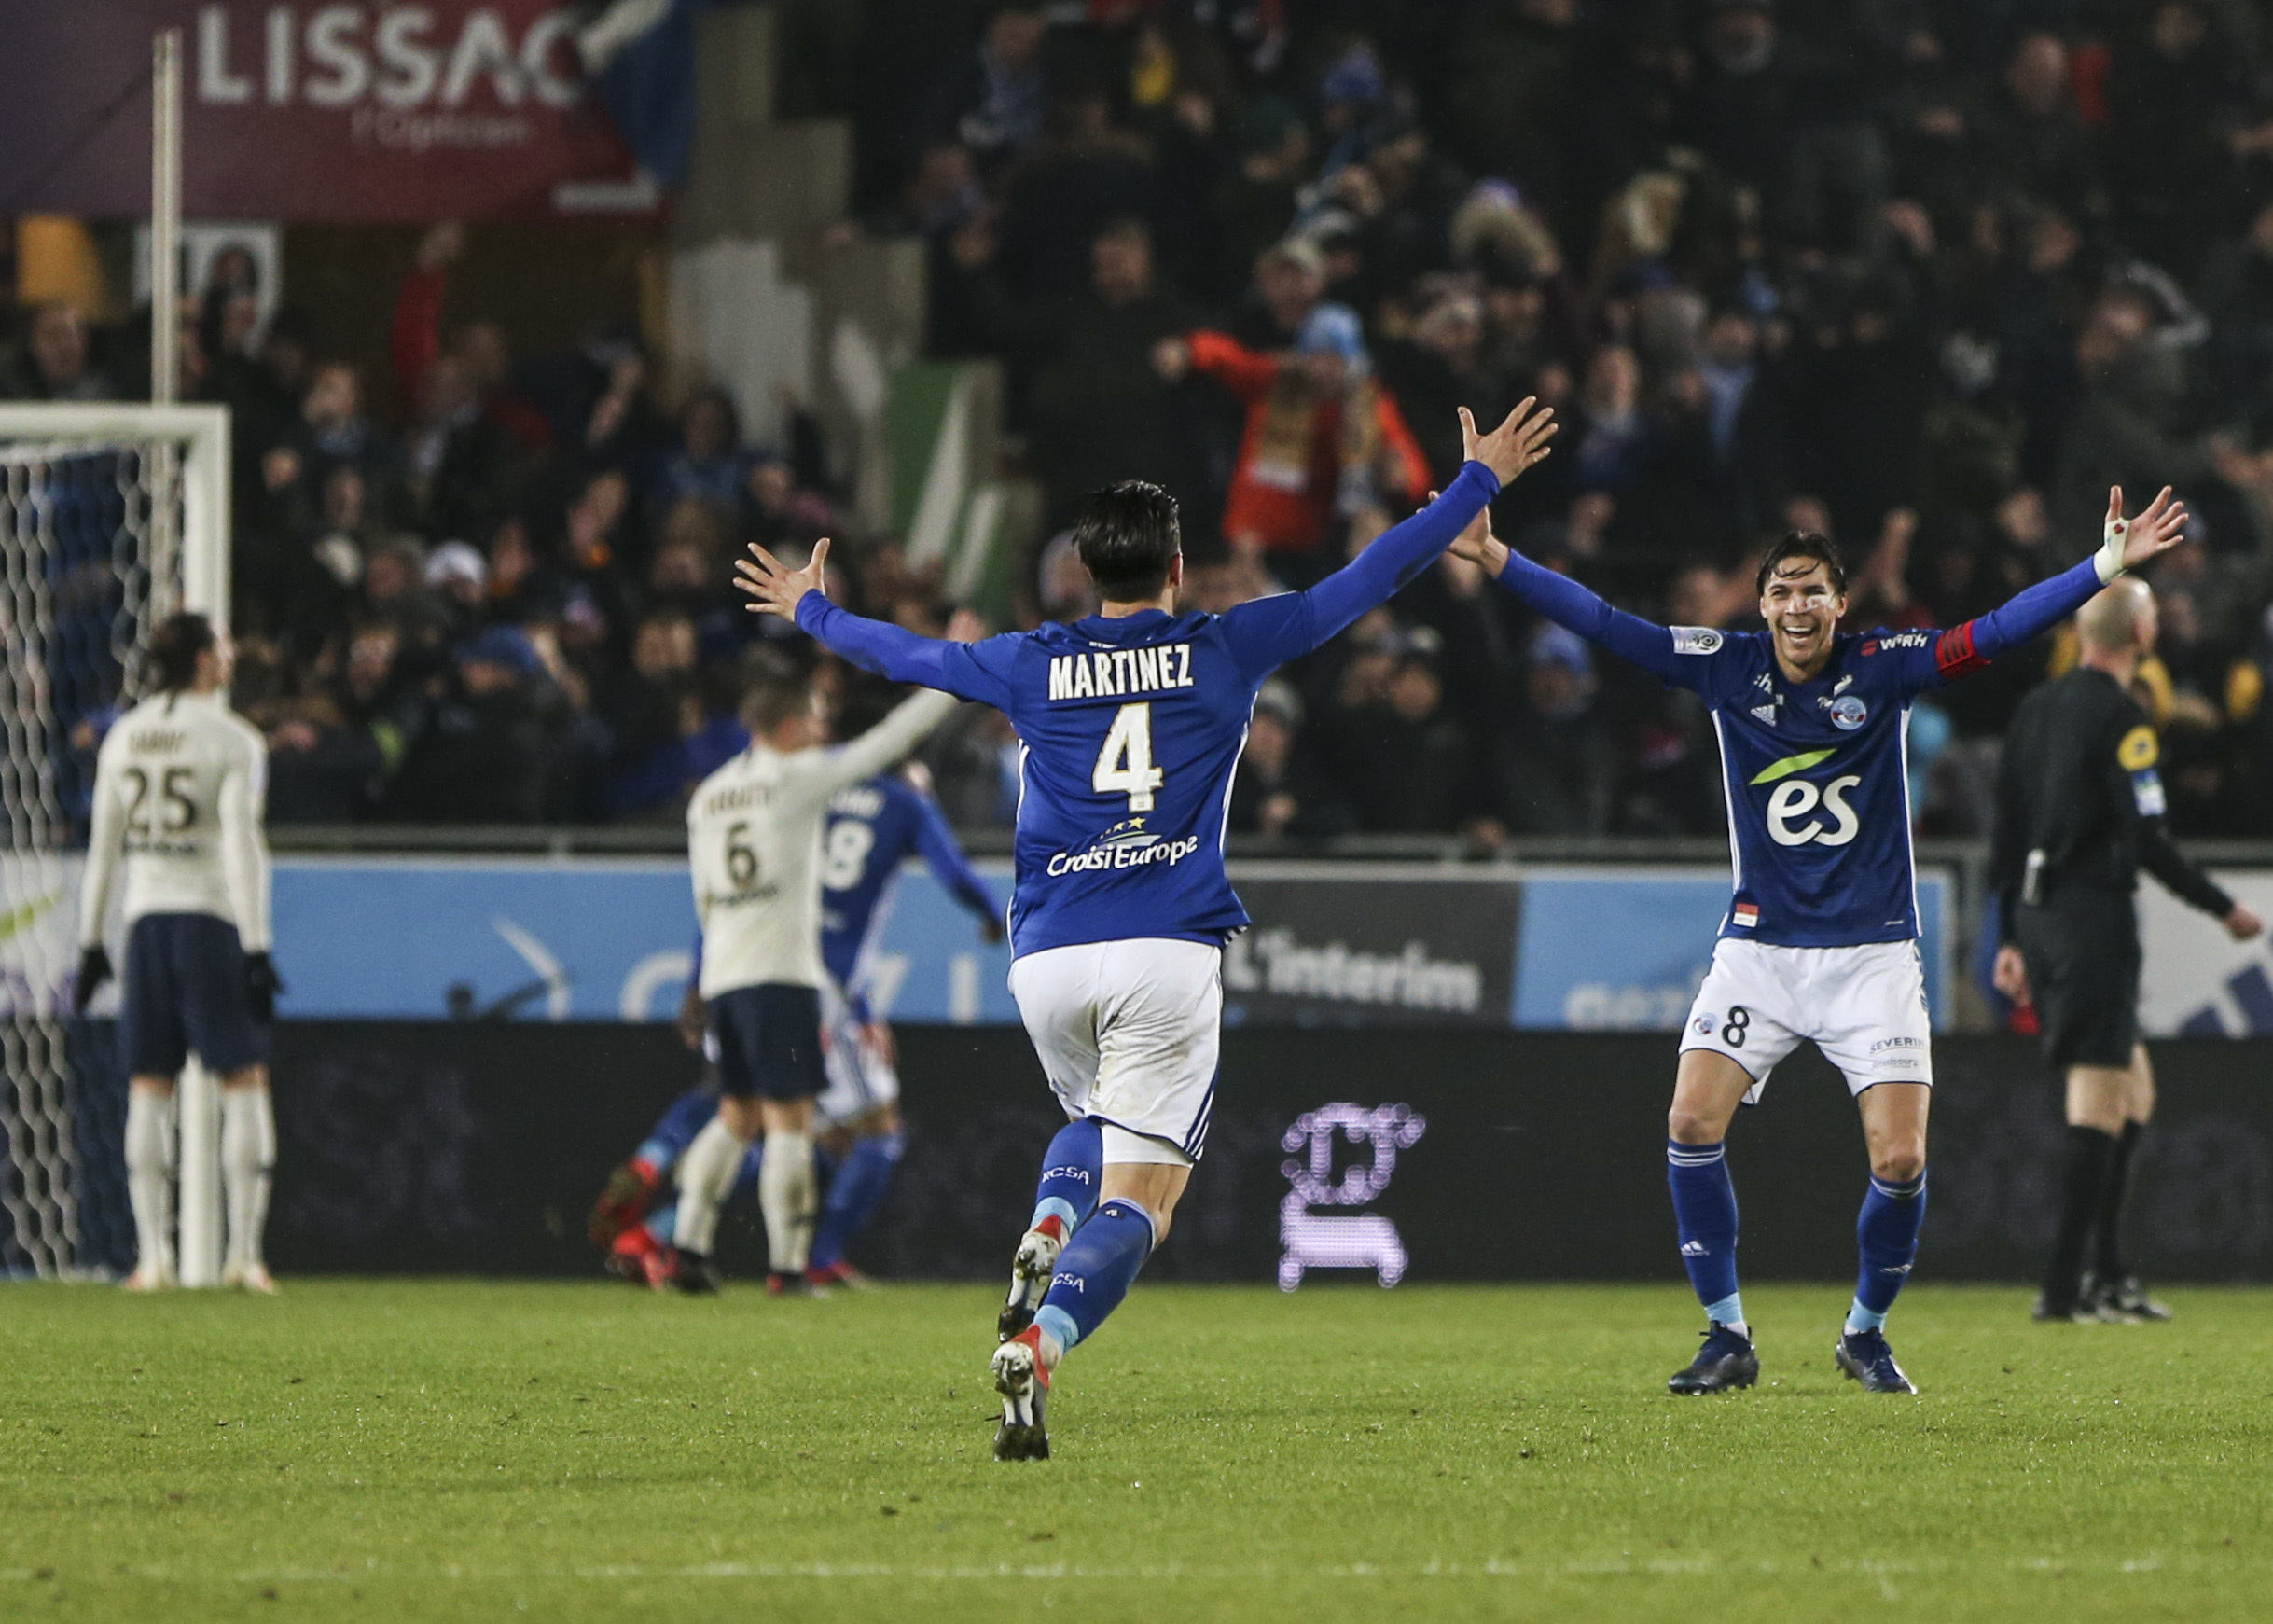 Coupe de la Ligue Final: Strasbourg vs. Guingamp Betting Tips and Enhanced Odds